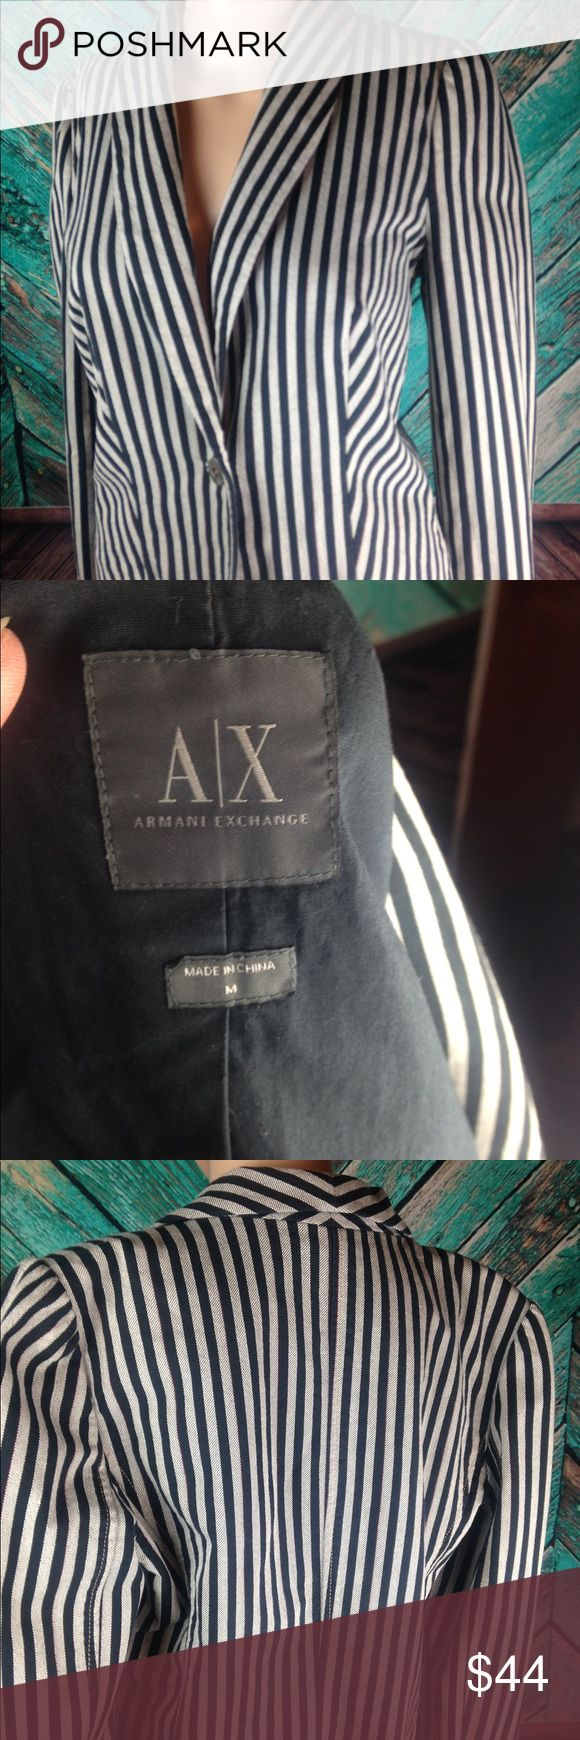 Armani Exchange Striped Blazer Fun, striped blazer from A/X. Tones of black and grey with a tiny red pinstripe. In very good used condition. A/X Armani Exchange Jackets & Coats Blazers